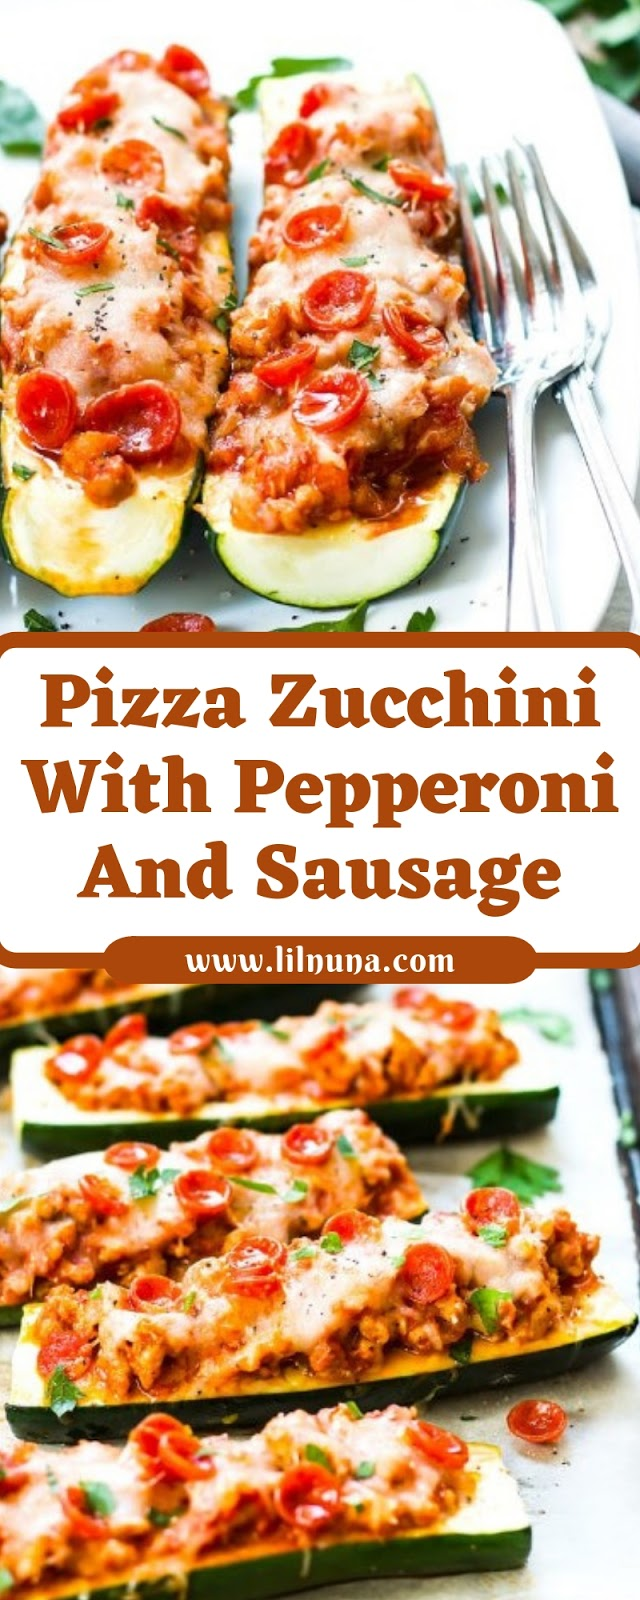 Pizza Zucchini With Pepperoni And Sausage